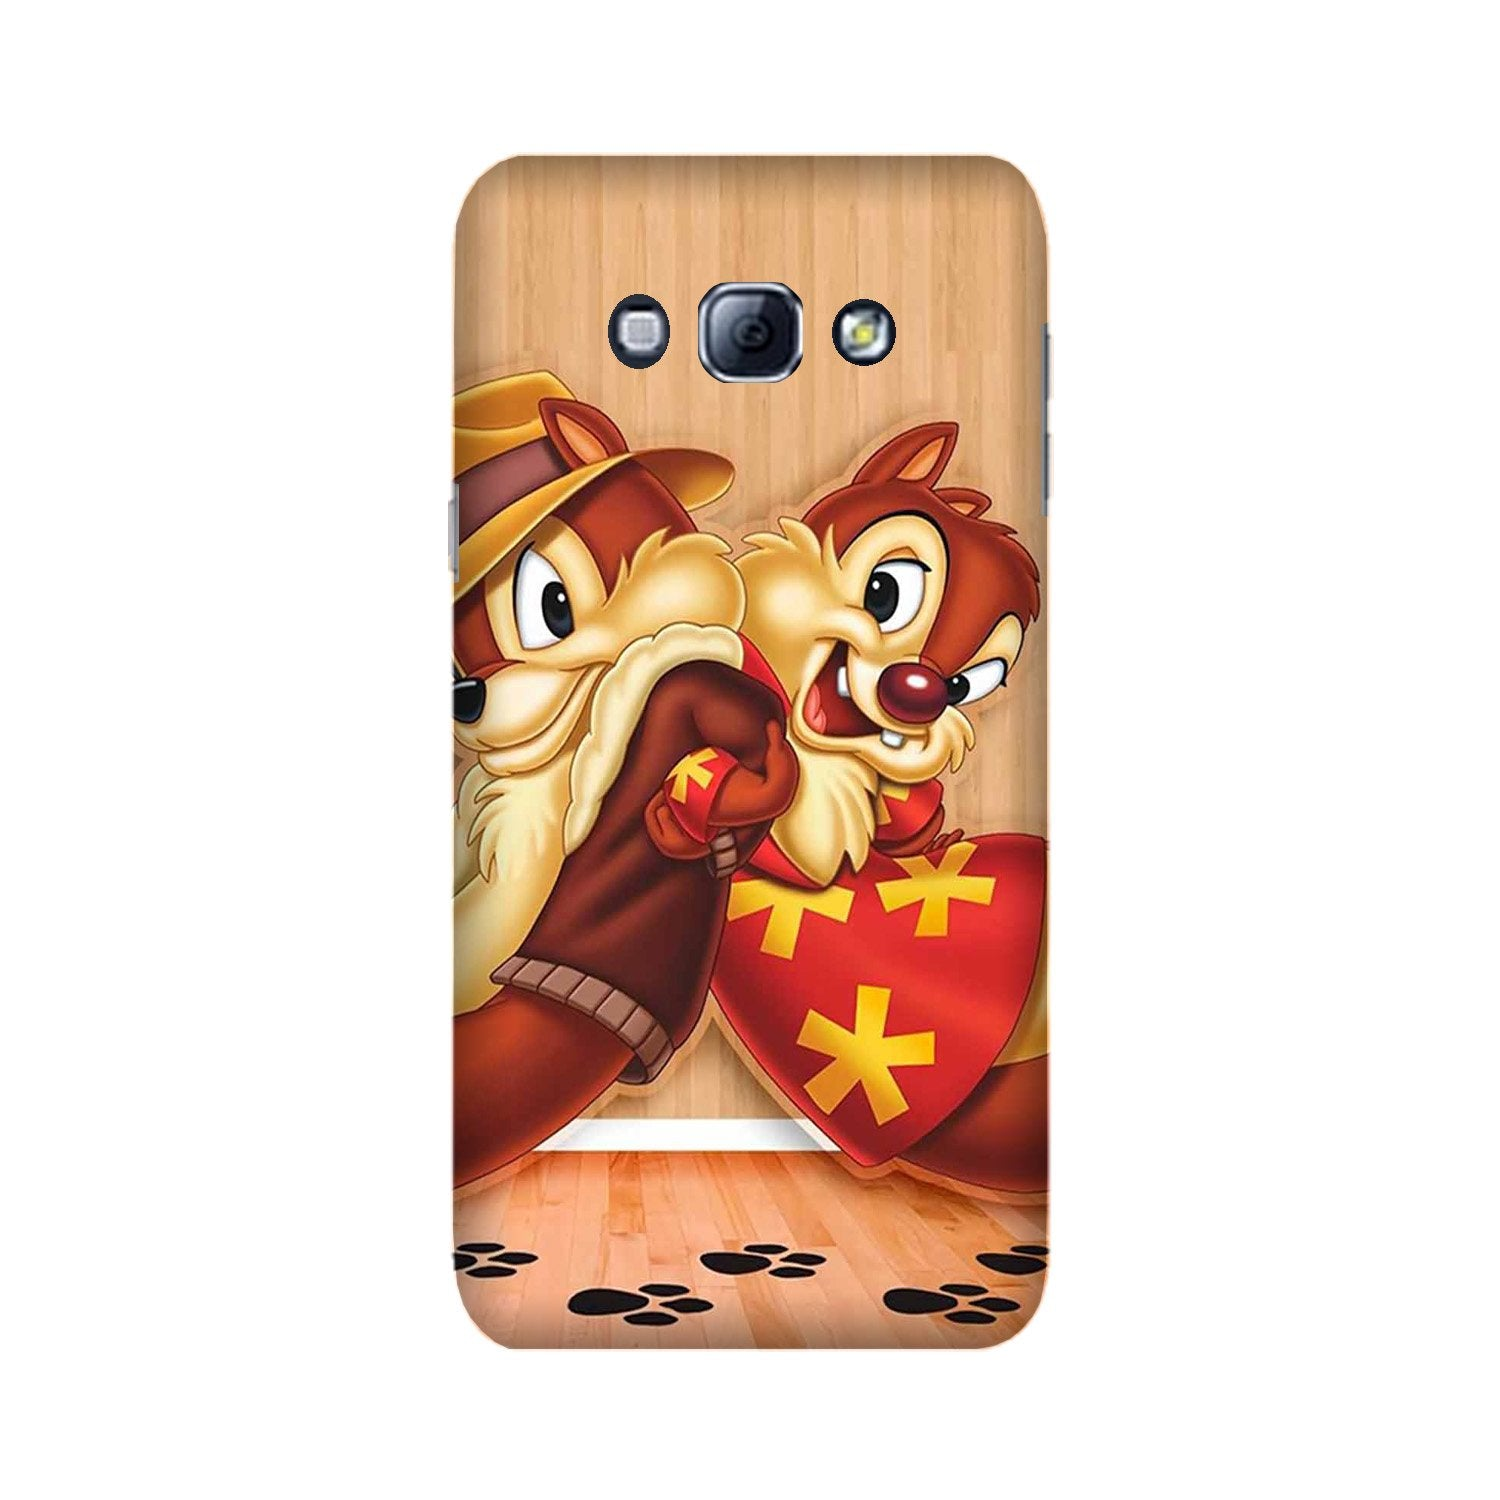 Chip n Dale Mobile Back Case for Galaxy A8 (2015)  (Design - 335)